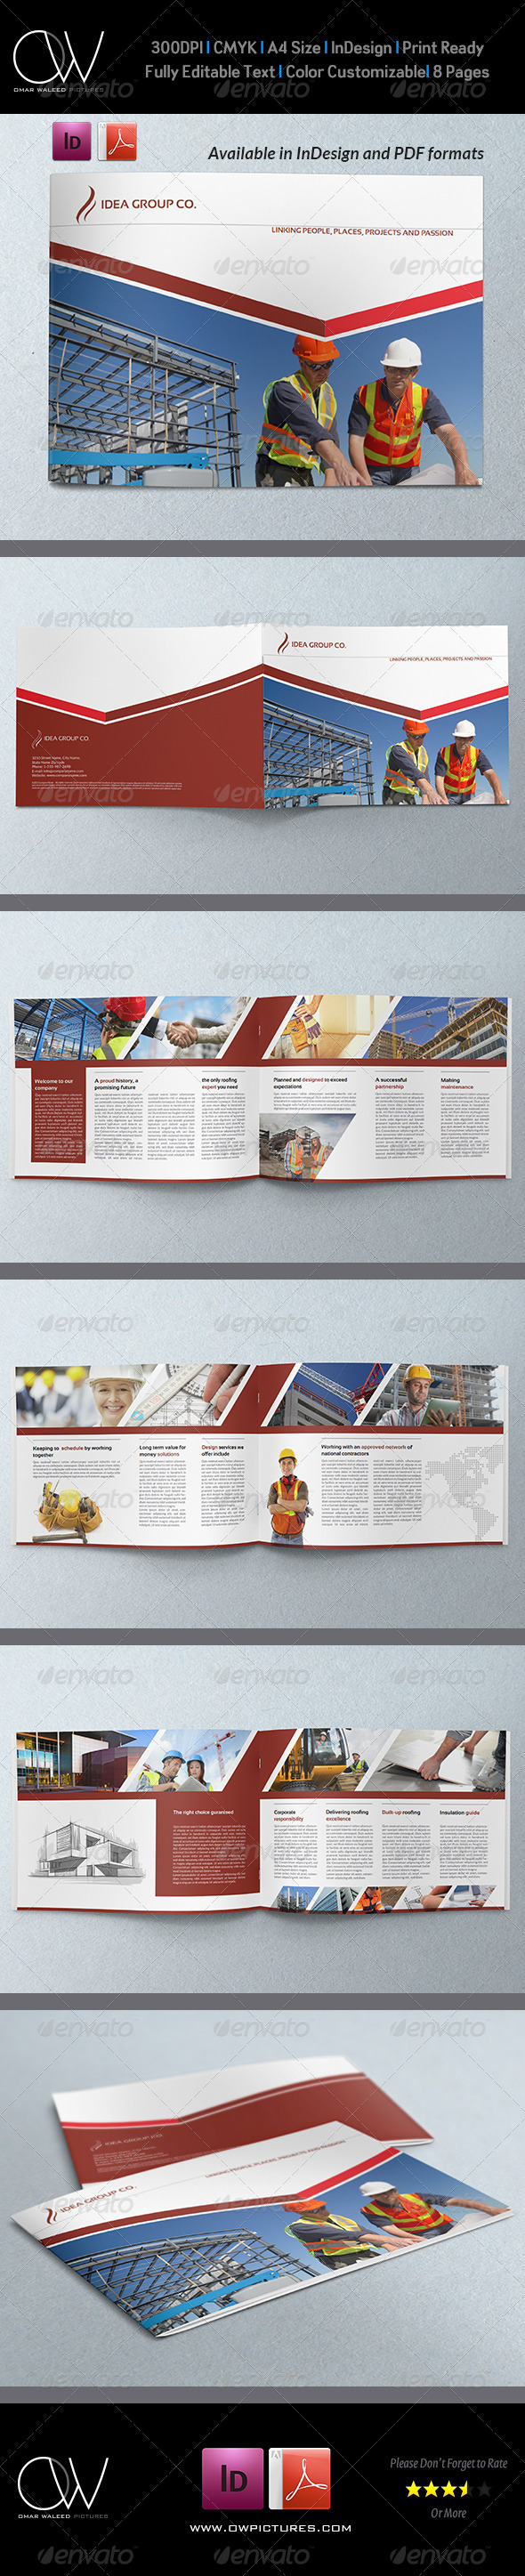 Corporate Brochure Template Vol.24 - 8 Pages - Corporate Brochures